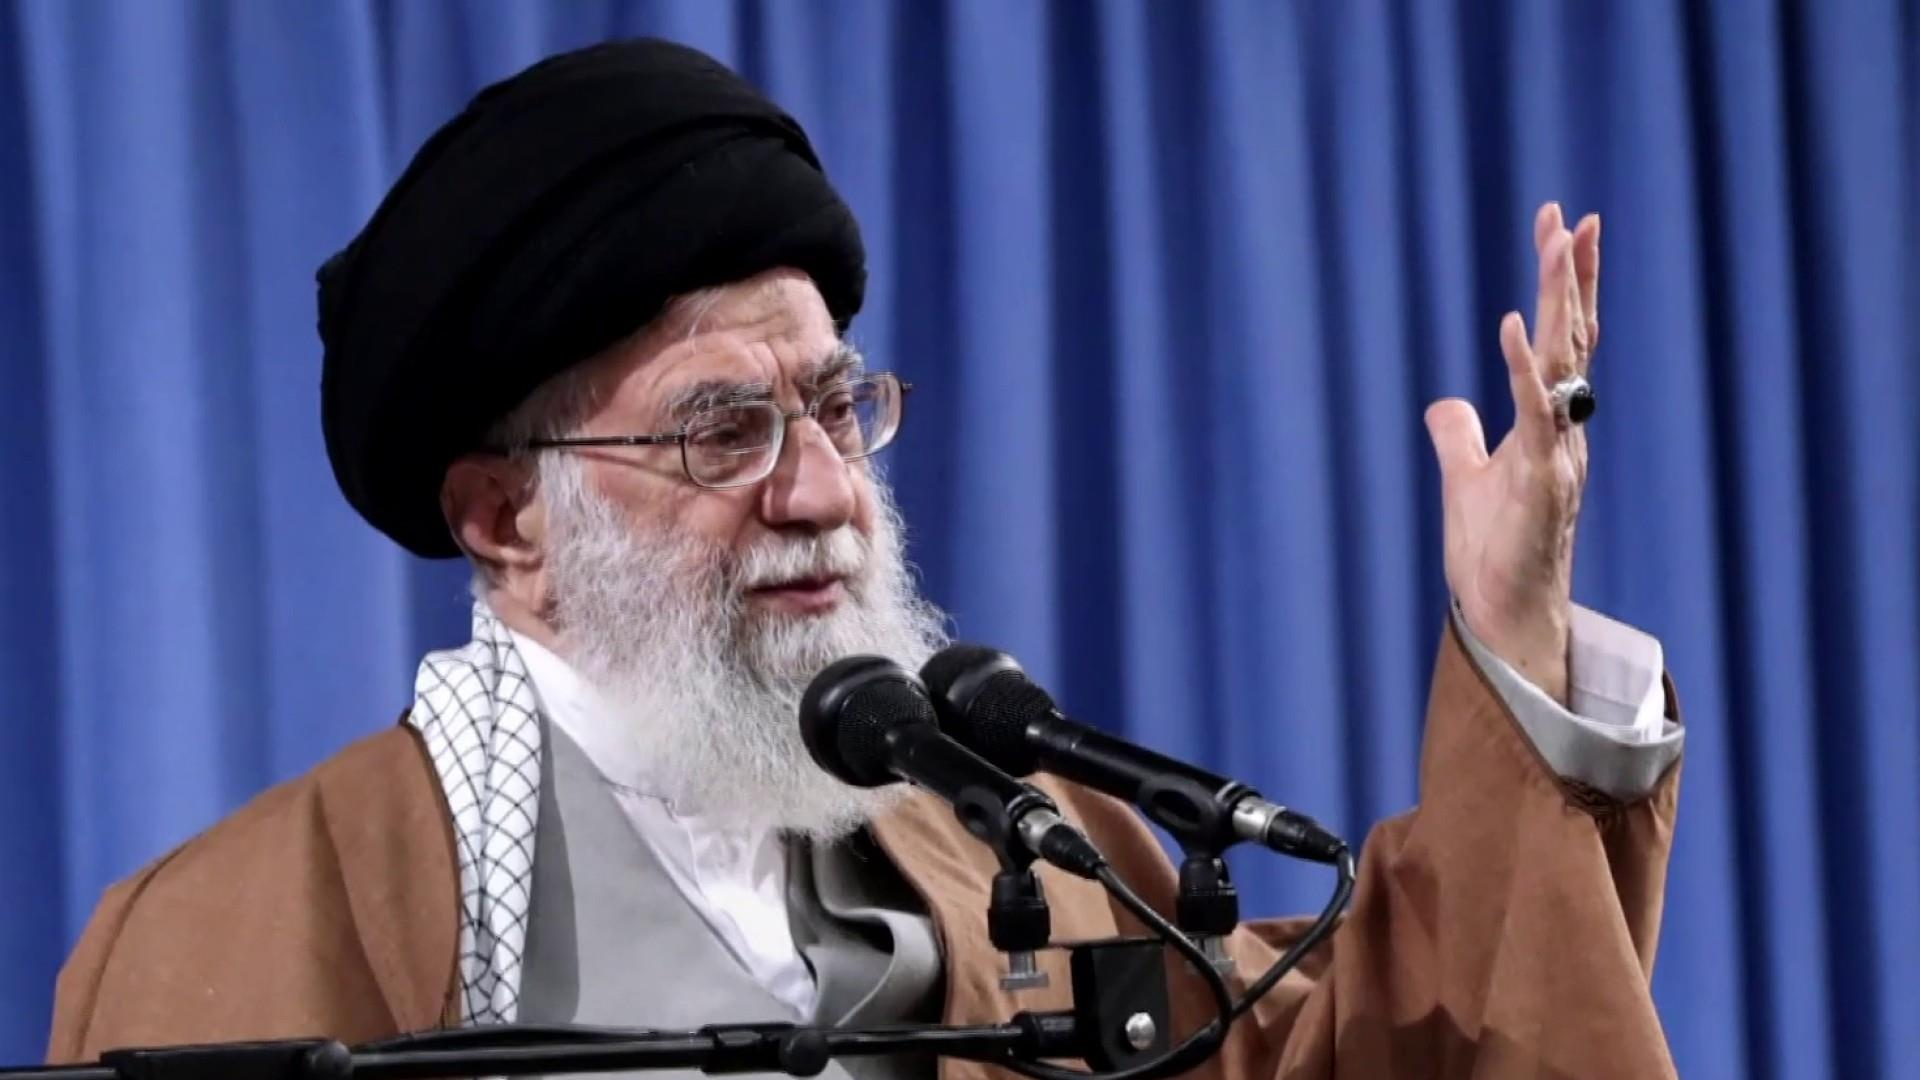 Will imposing sanctions on Iran help avoid military escalation?